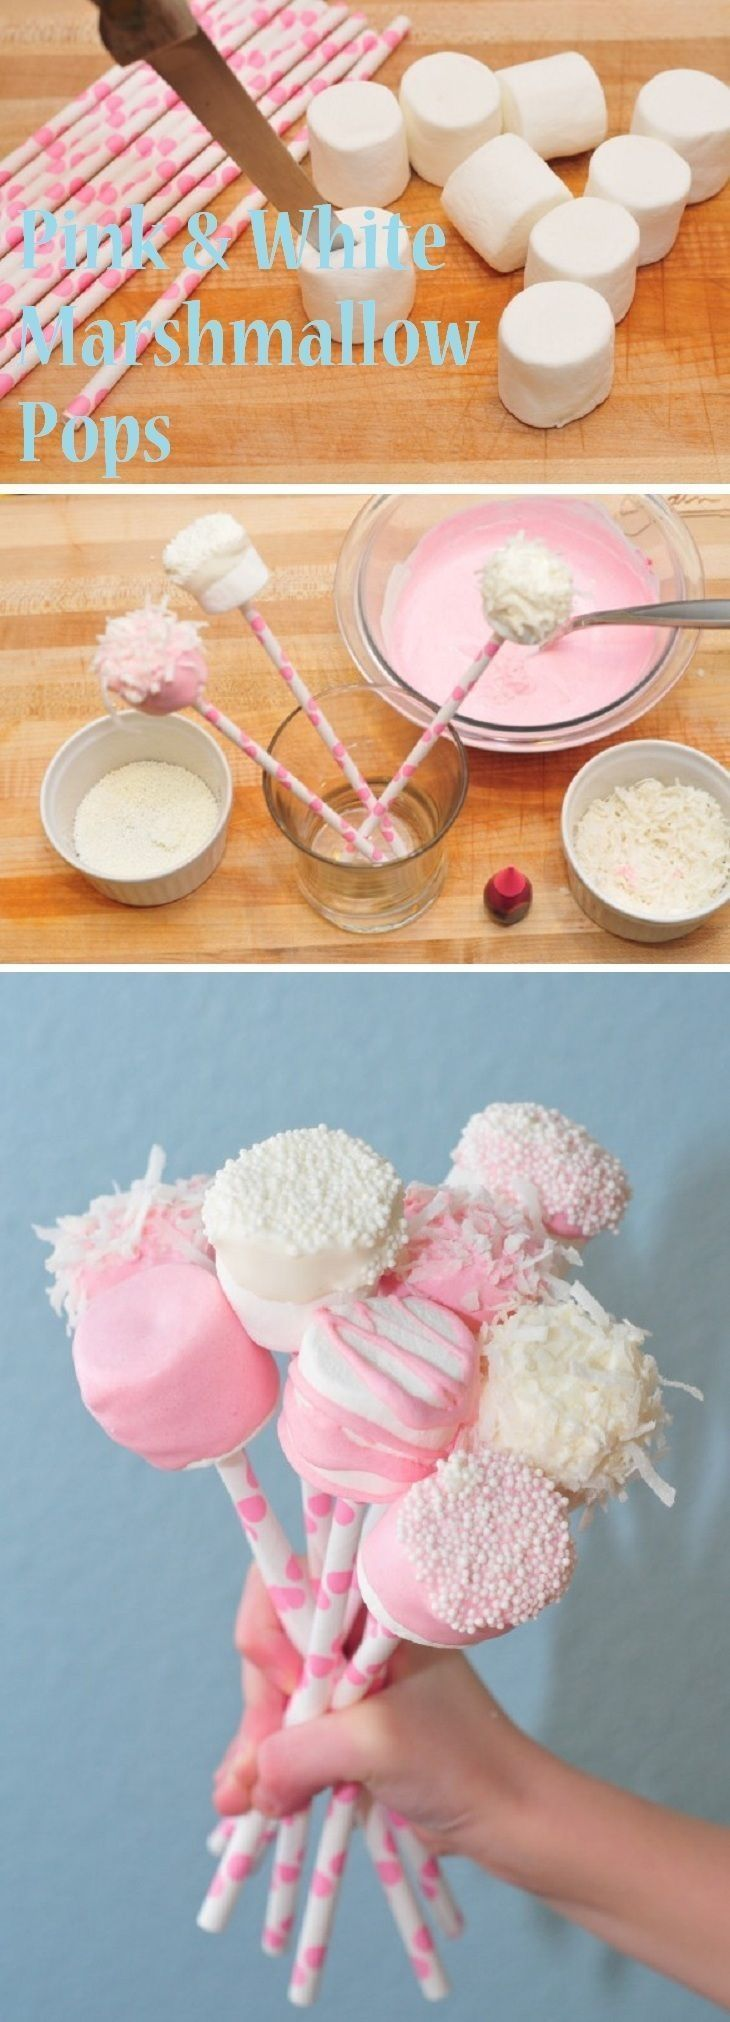 Pink And White Marshmallow Pops Pictures, Photos, and Images for Facebook, Tumblr, Pinterest, and Twitter